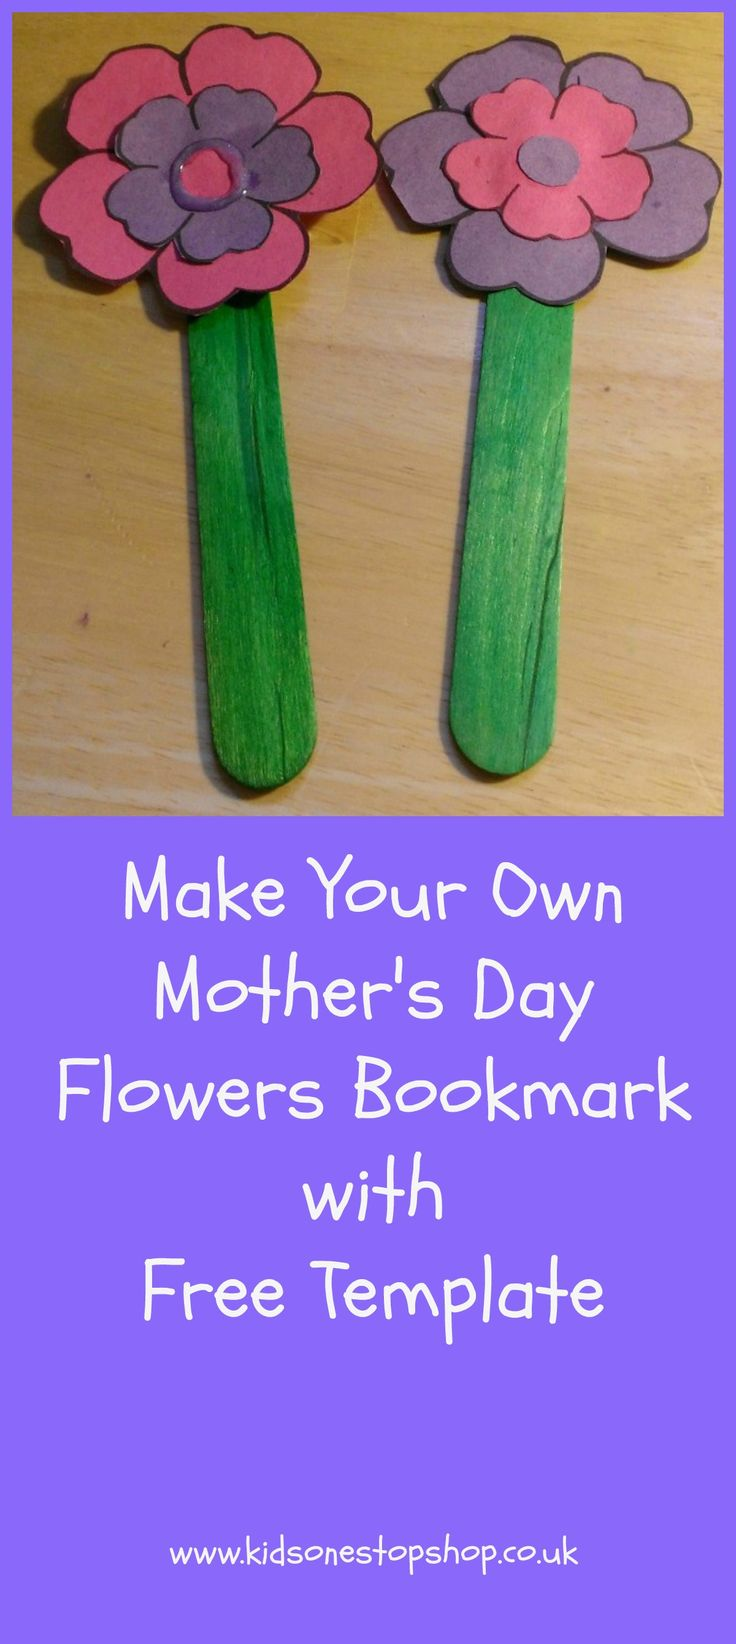 Mothers day coloring sheets for sunday school - Mother S Day Bookmark Mothers Day Sunday School